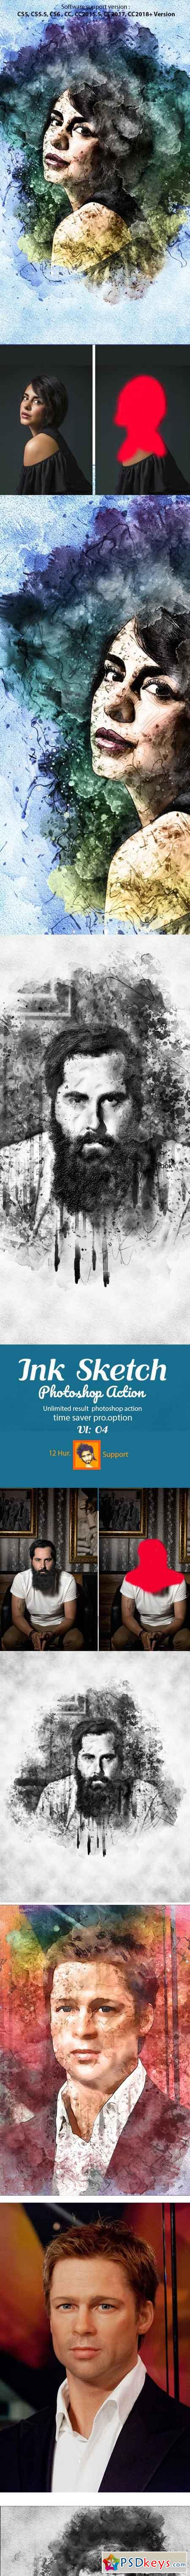 Ink Sketch Photoshop Action 22864165